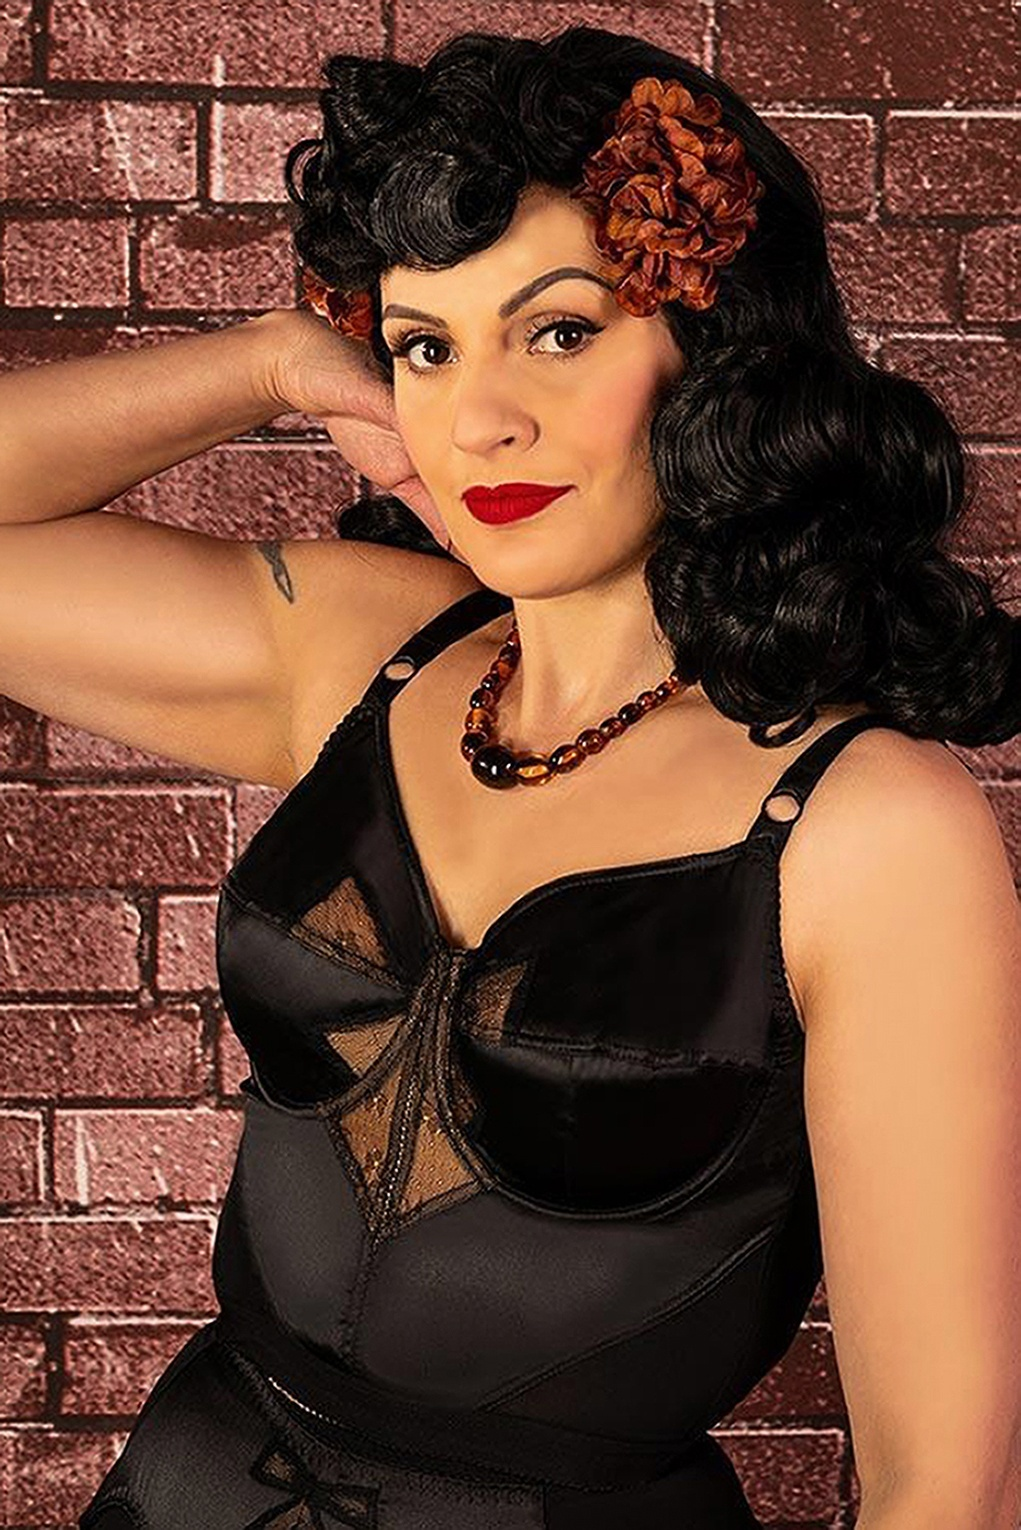 Retro Lingerie, Vintage Lingerie, New 1950s,1960s, 1970s 50s Retro Bow Longline Bra in Black £68.74 AT vintagedancer.com